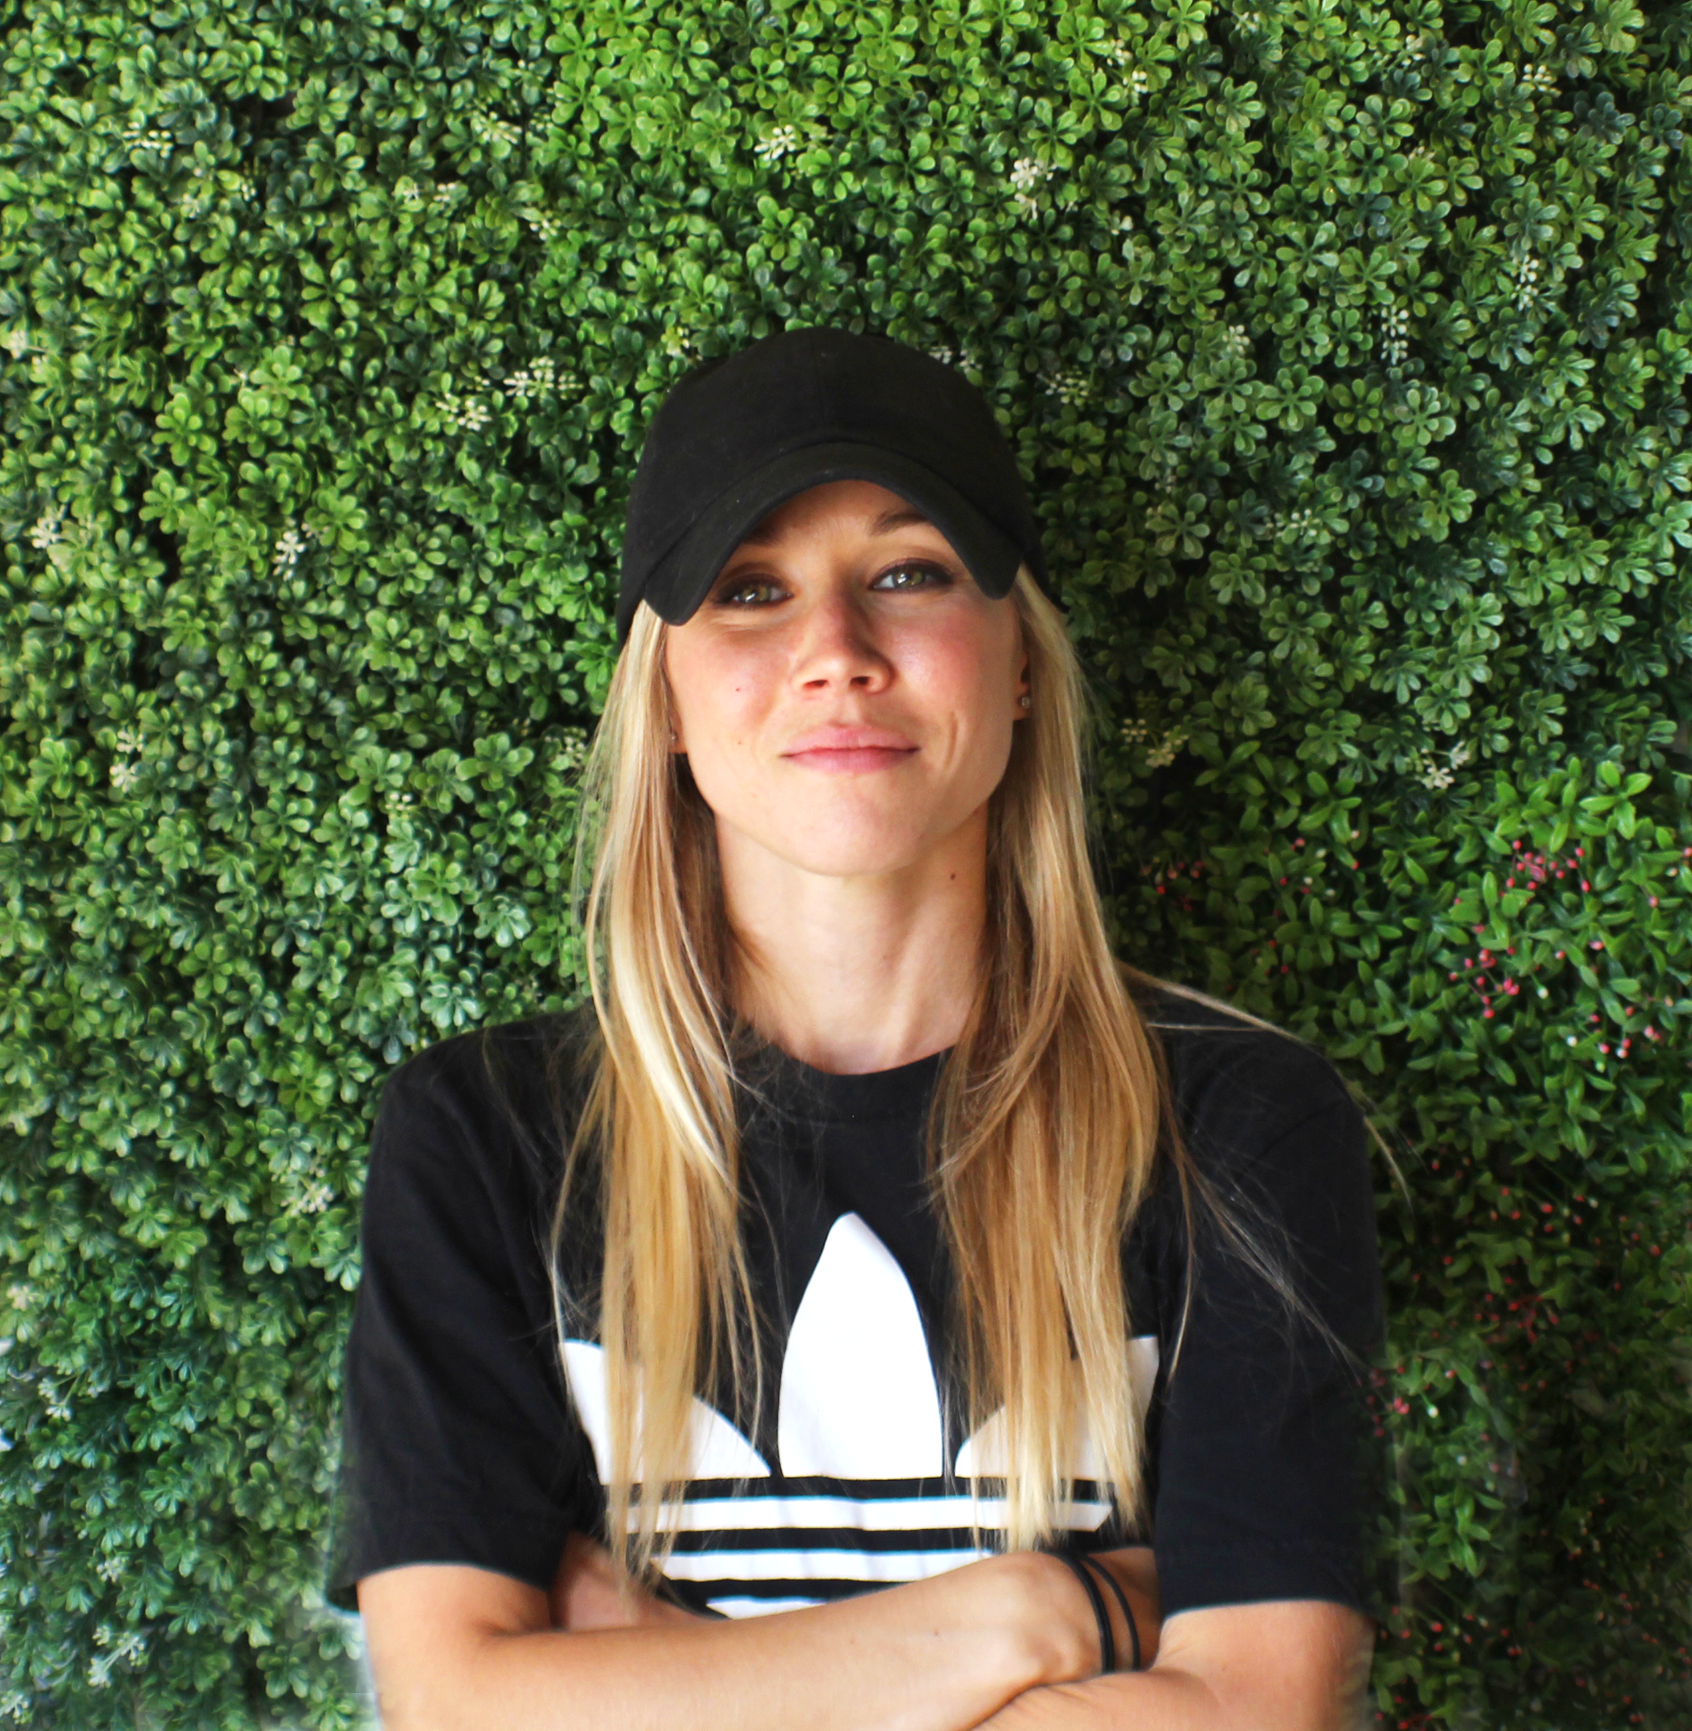 Michelle - Owner + Founder